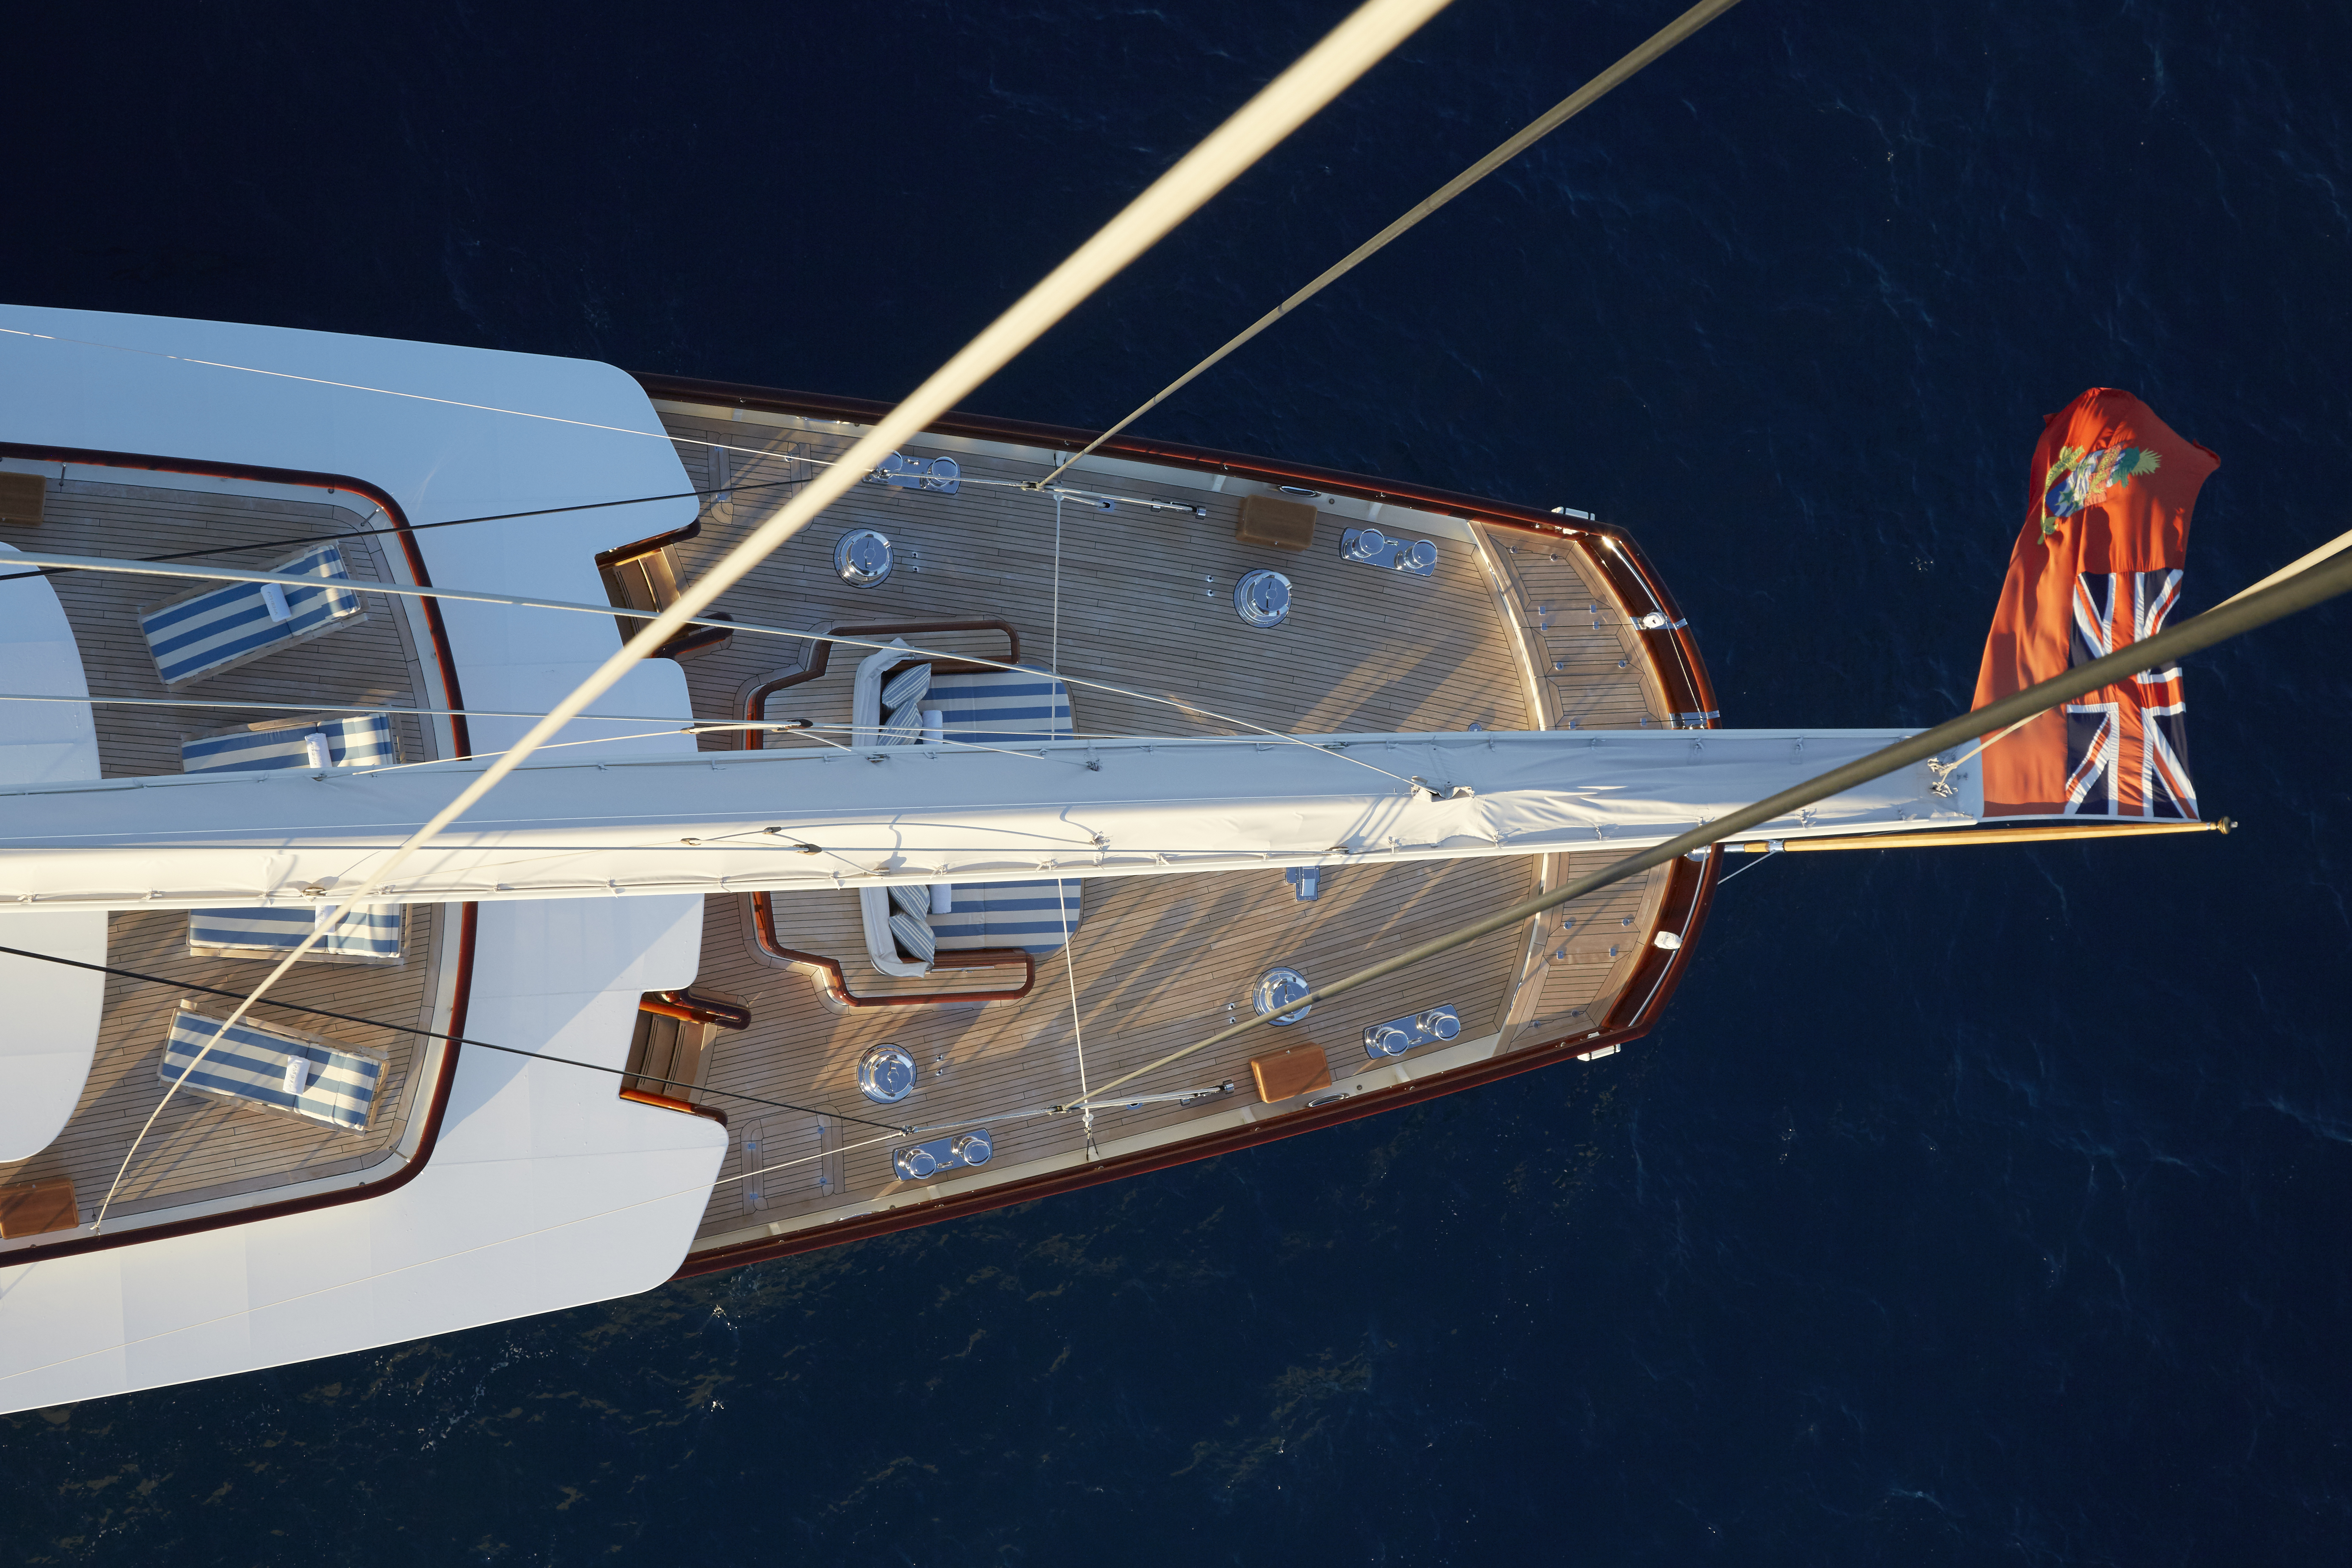 A view of the sailing yacht Athena from the crow's nest